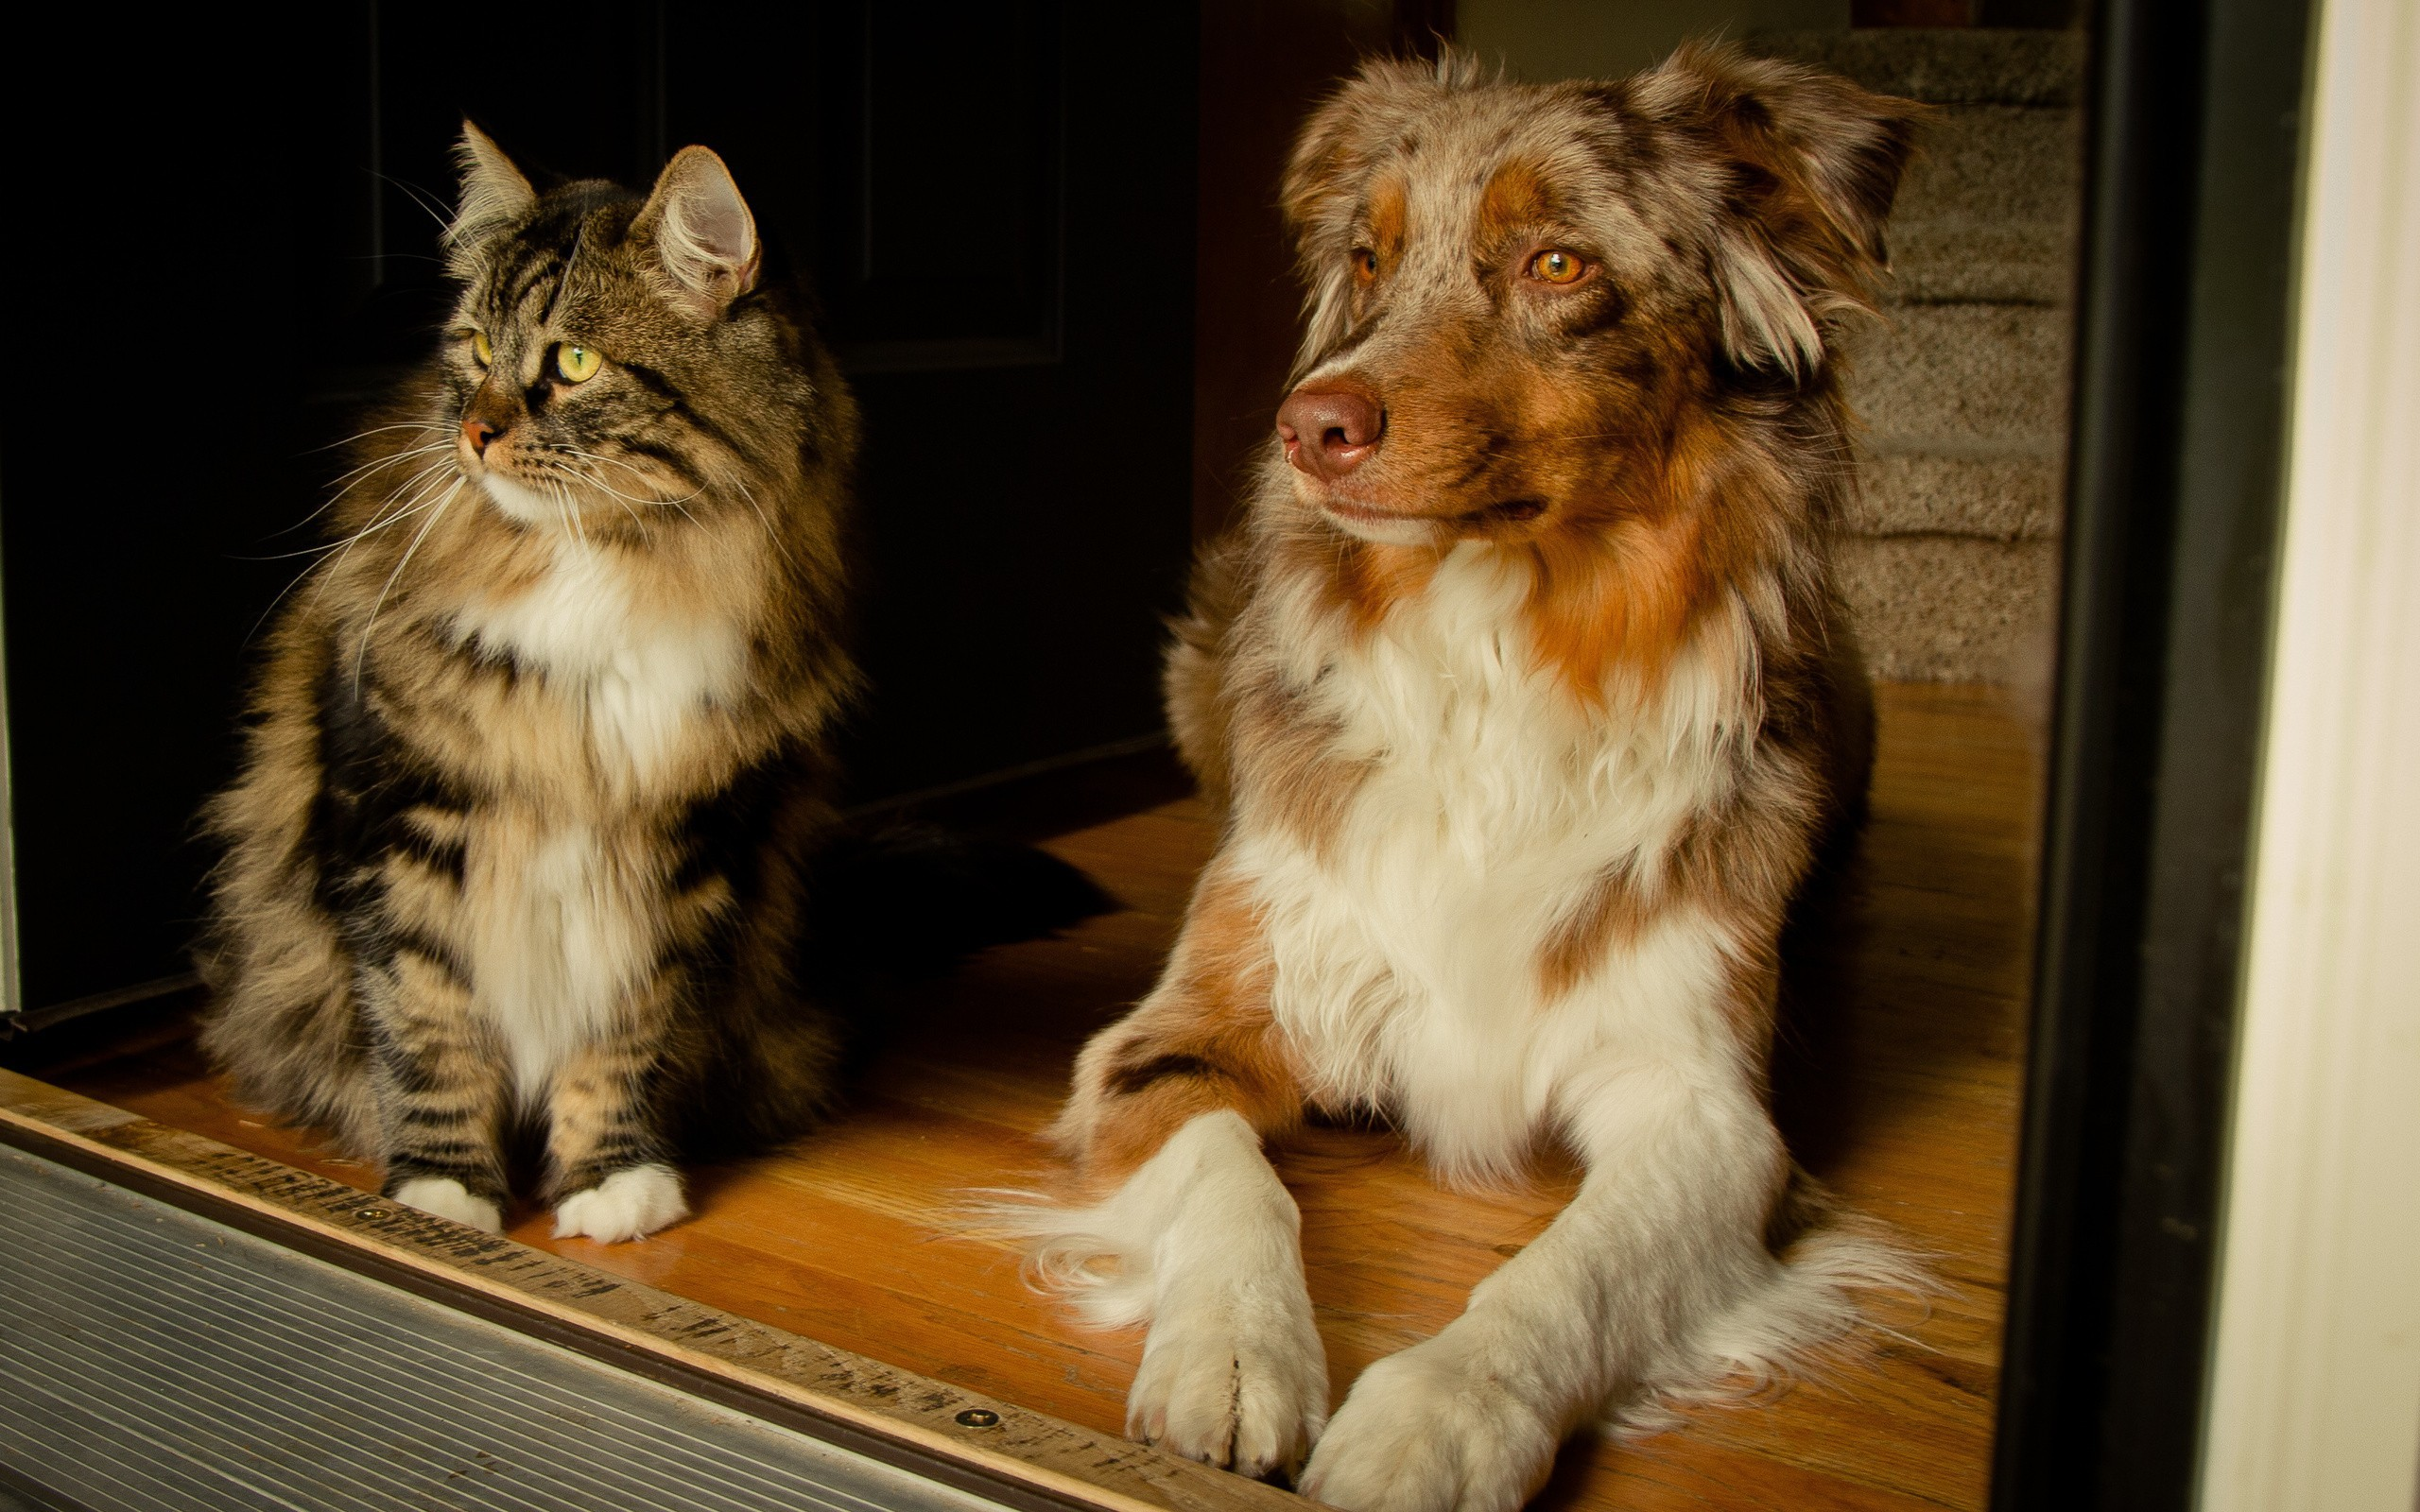 Cat And Dog Friends Wallpapers Images Pictures Wallpaper 2560x1600